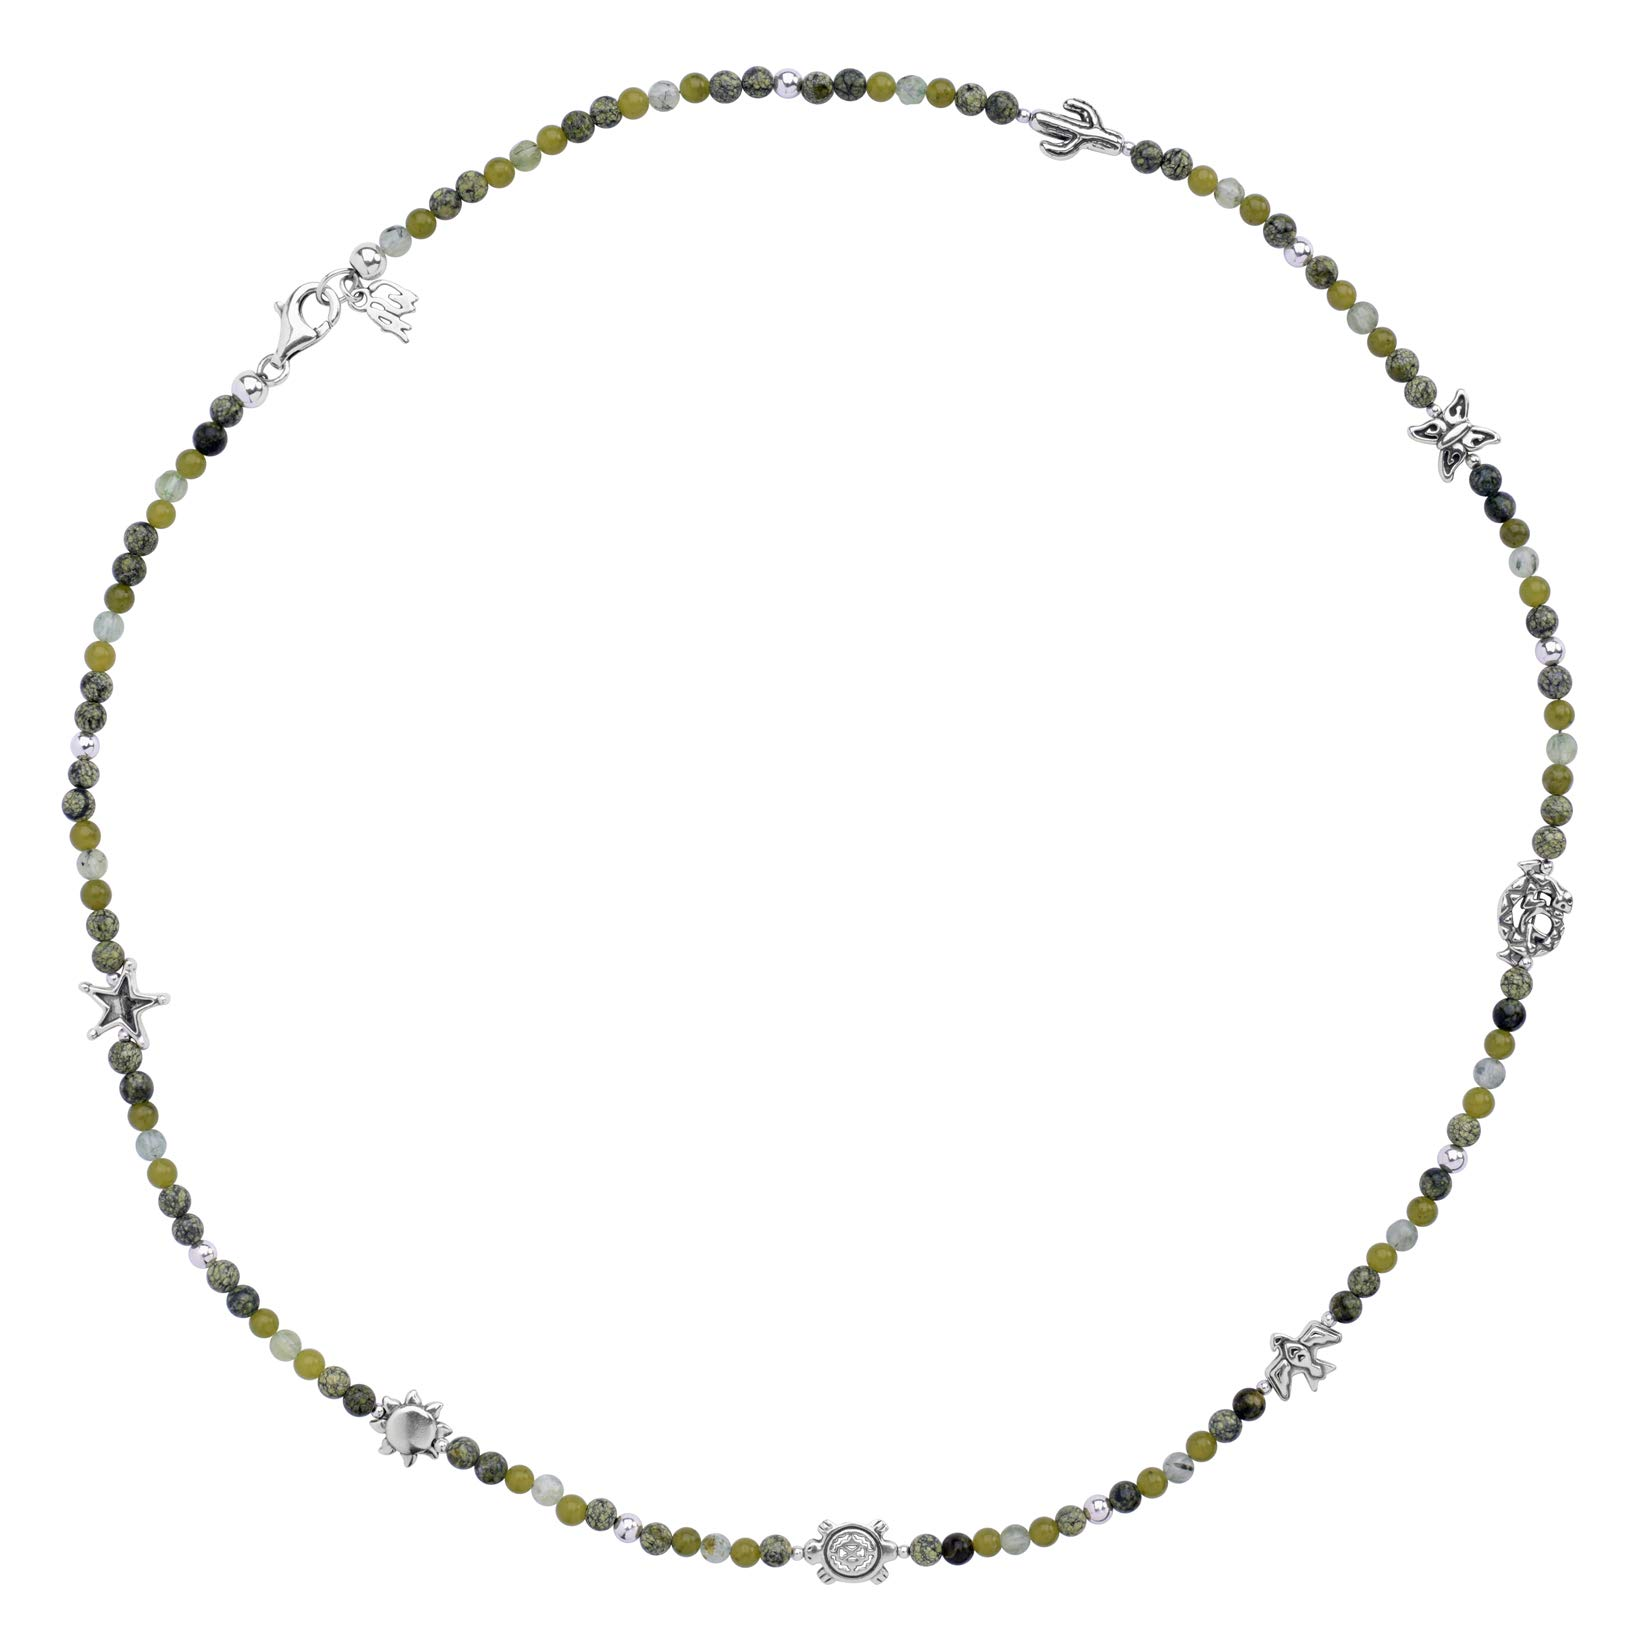 Sterling Silver 24'' Green Gemstone Beaded 7 Charm Necklace by American West (Image #4)